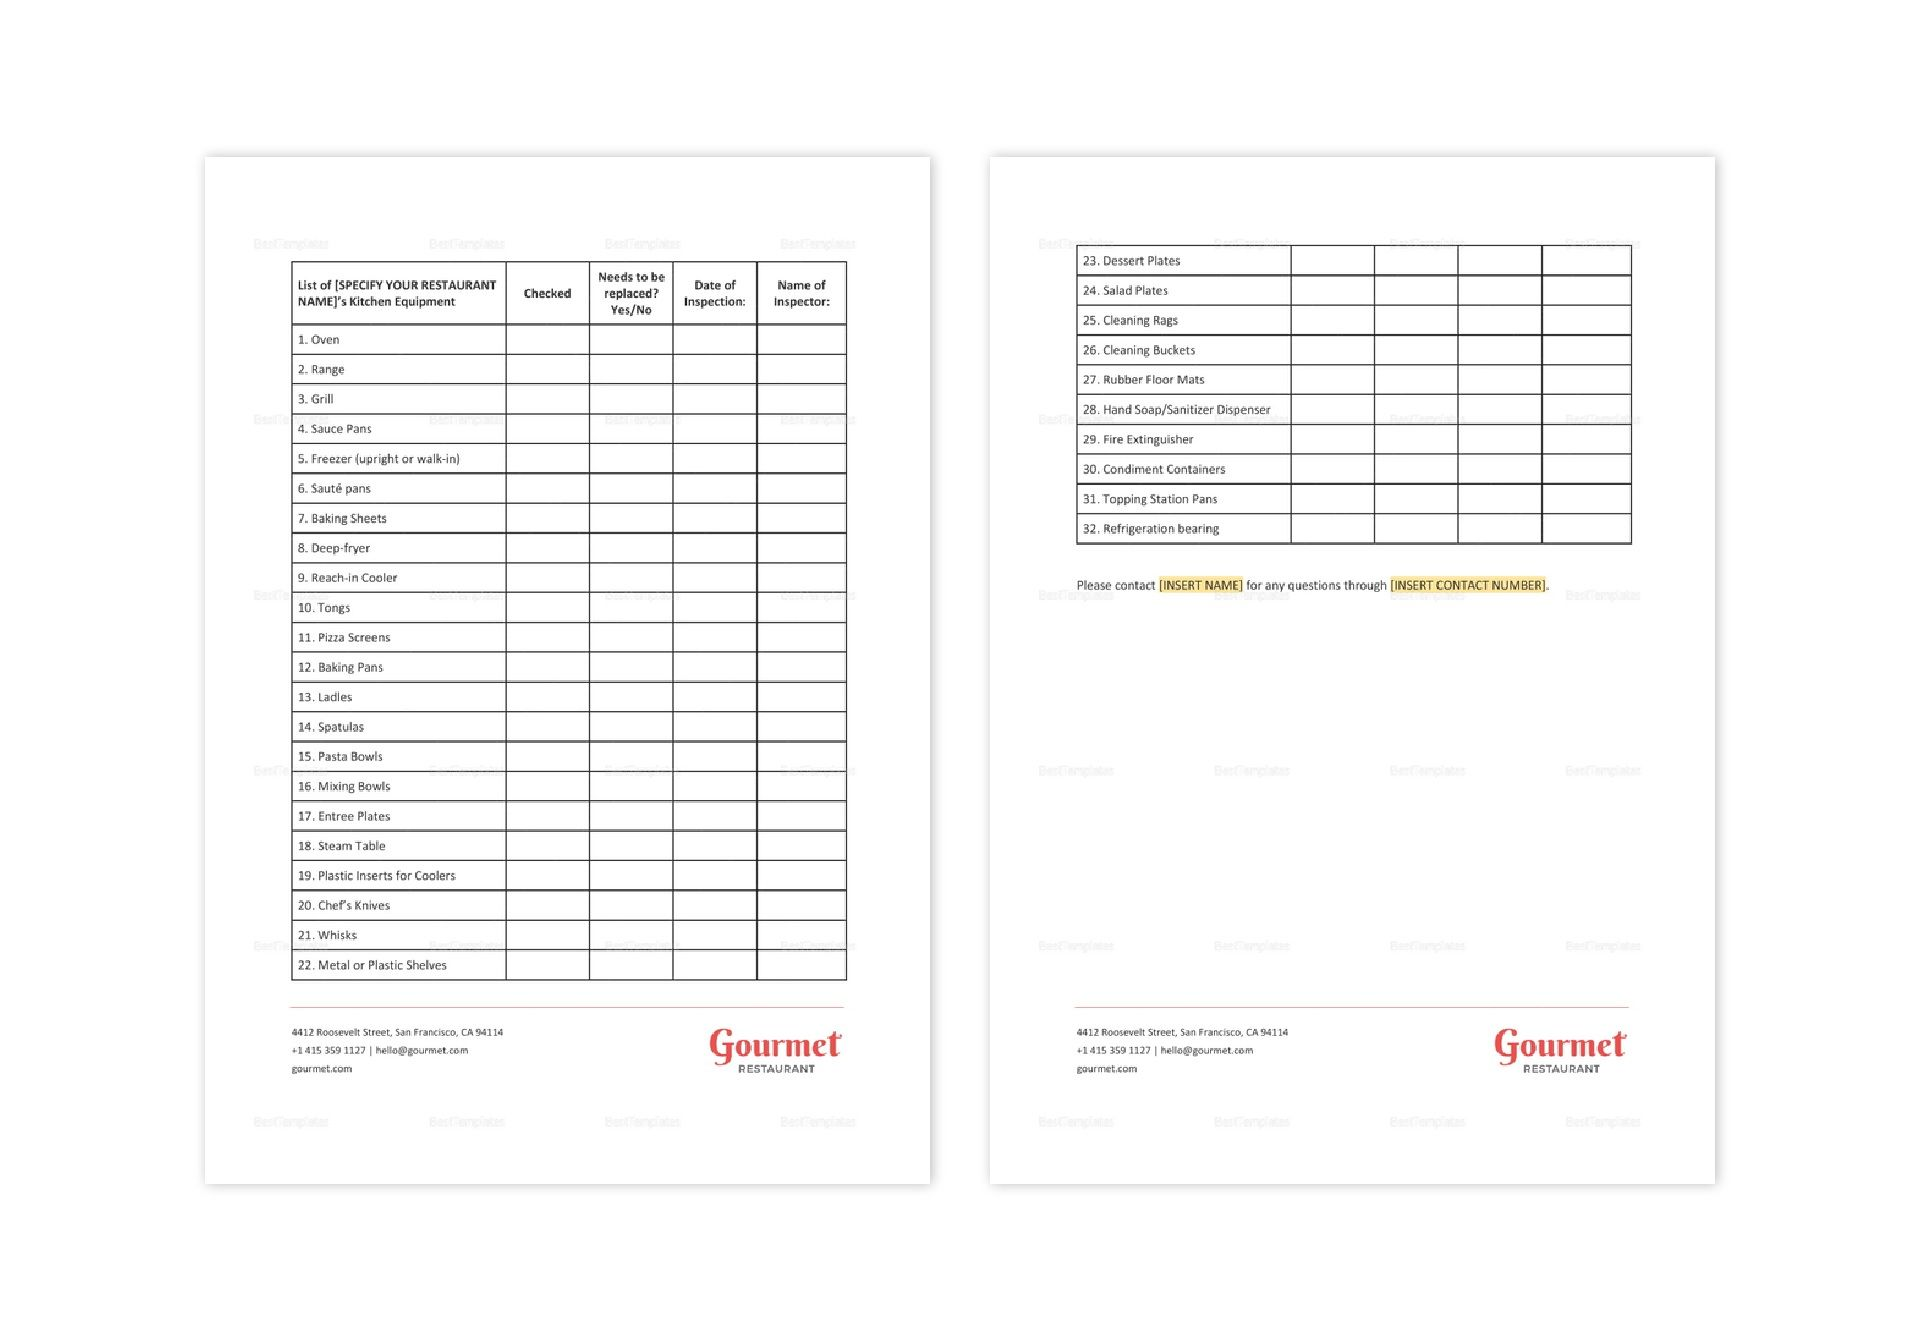 Restaurant Kitchen Equipment Checklist Template in MS Word